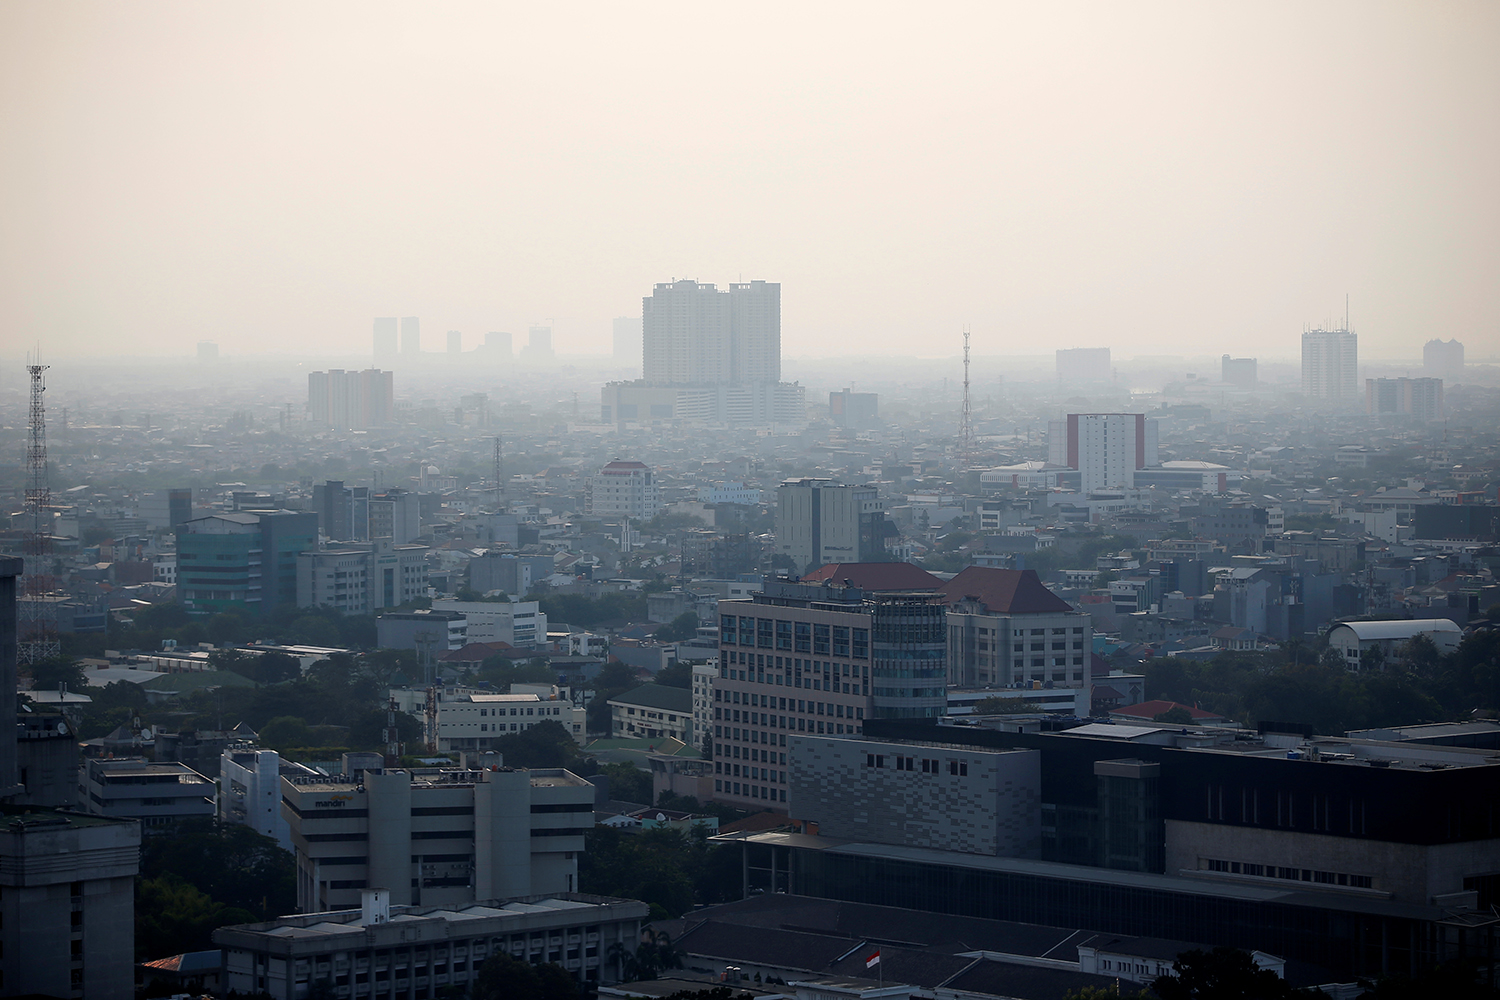 A general view of the capital city as smog covers it in Jakarta on Thursday. (Reuters photo)